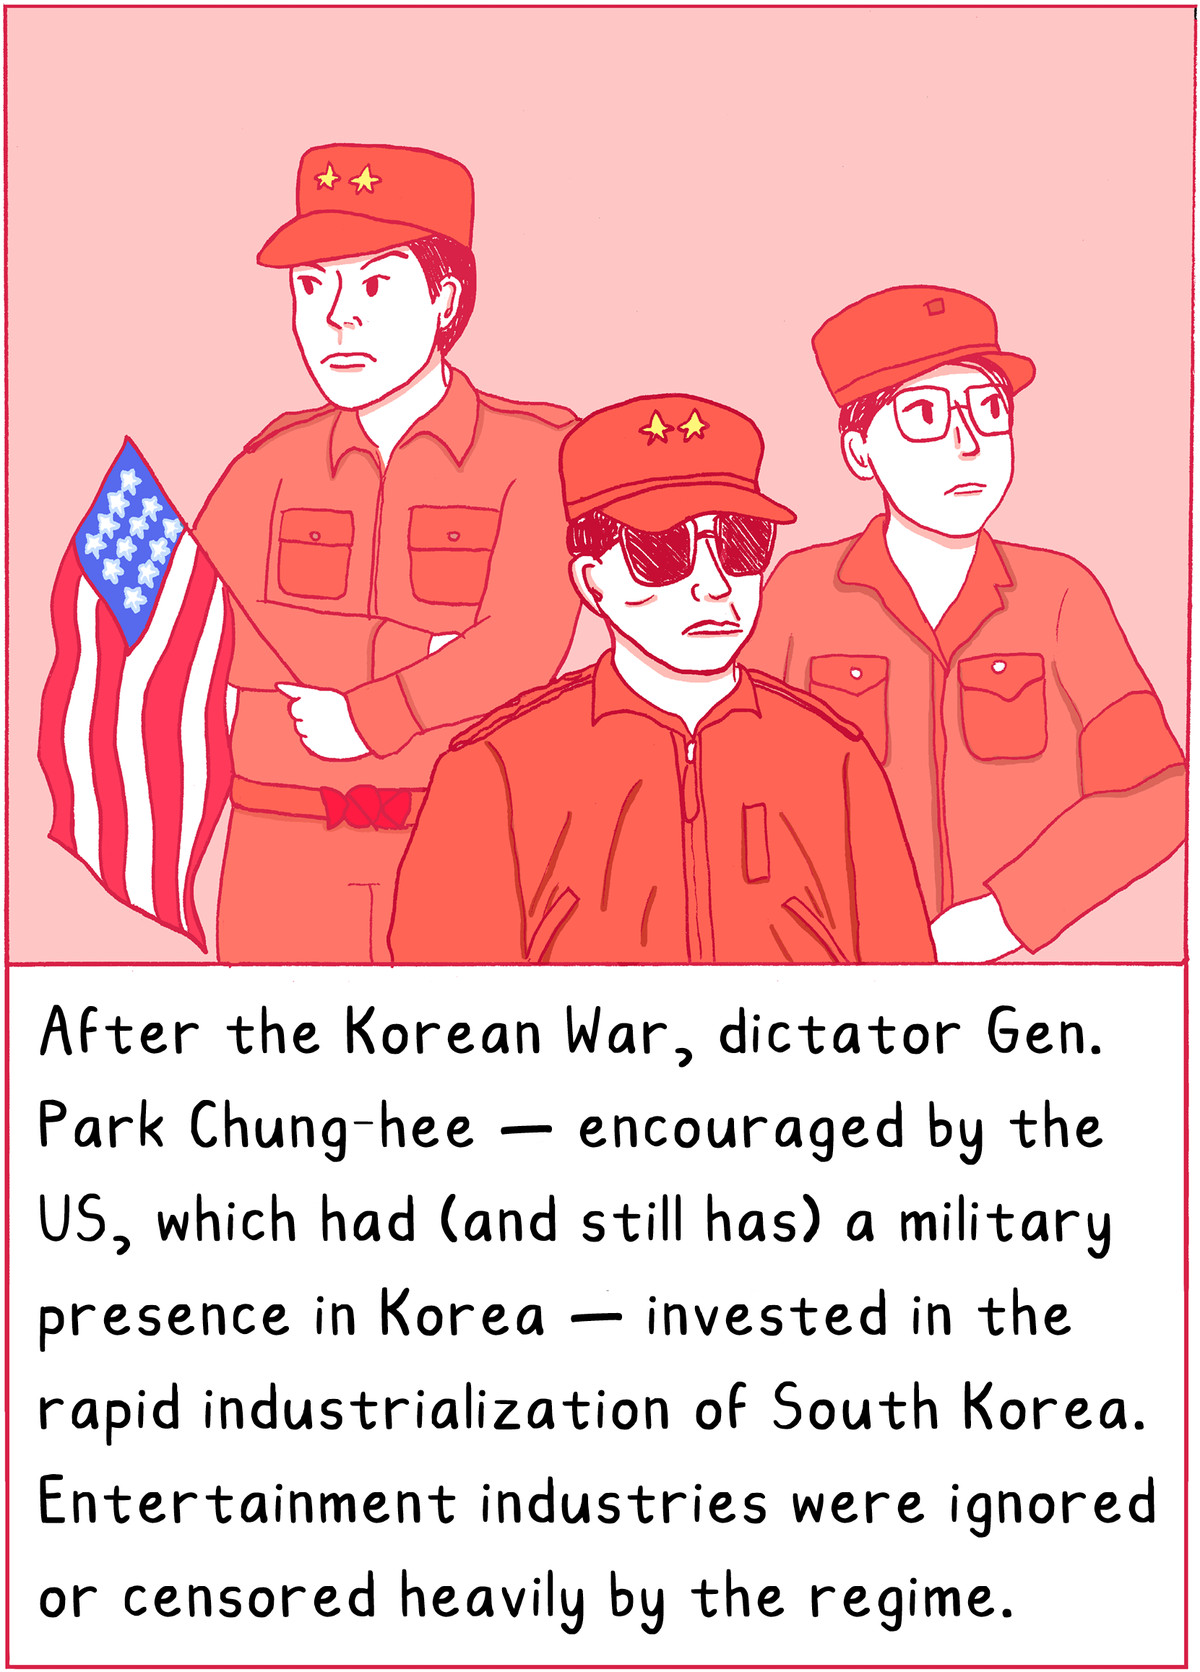 After the Korean War, dictator General Park Chunghee —encouraged by the US, who had and still has a military presence in Korea — invested in rapid industrialization of South Korea. Entertainment industries were ignored or censored heavily by the regime.